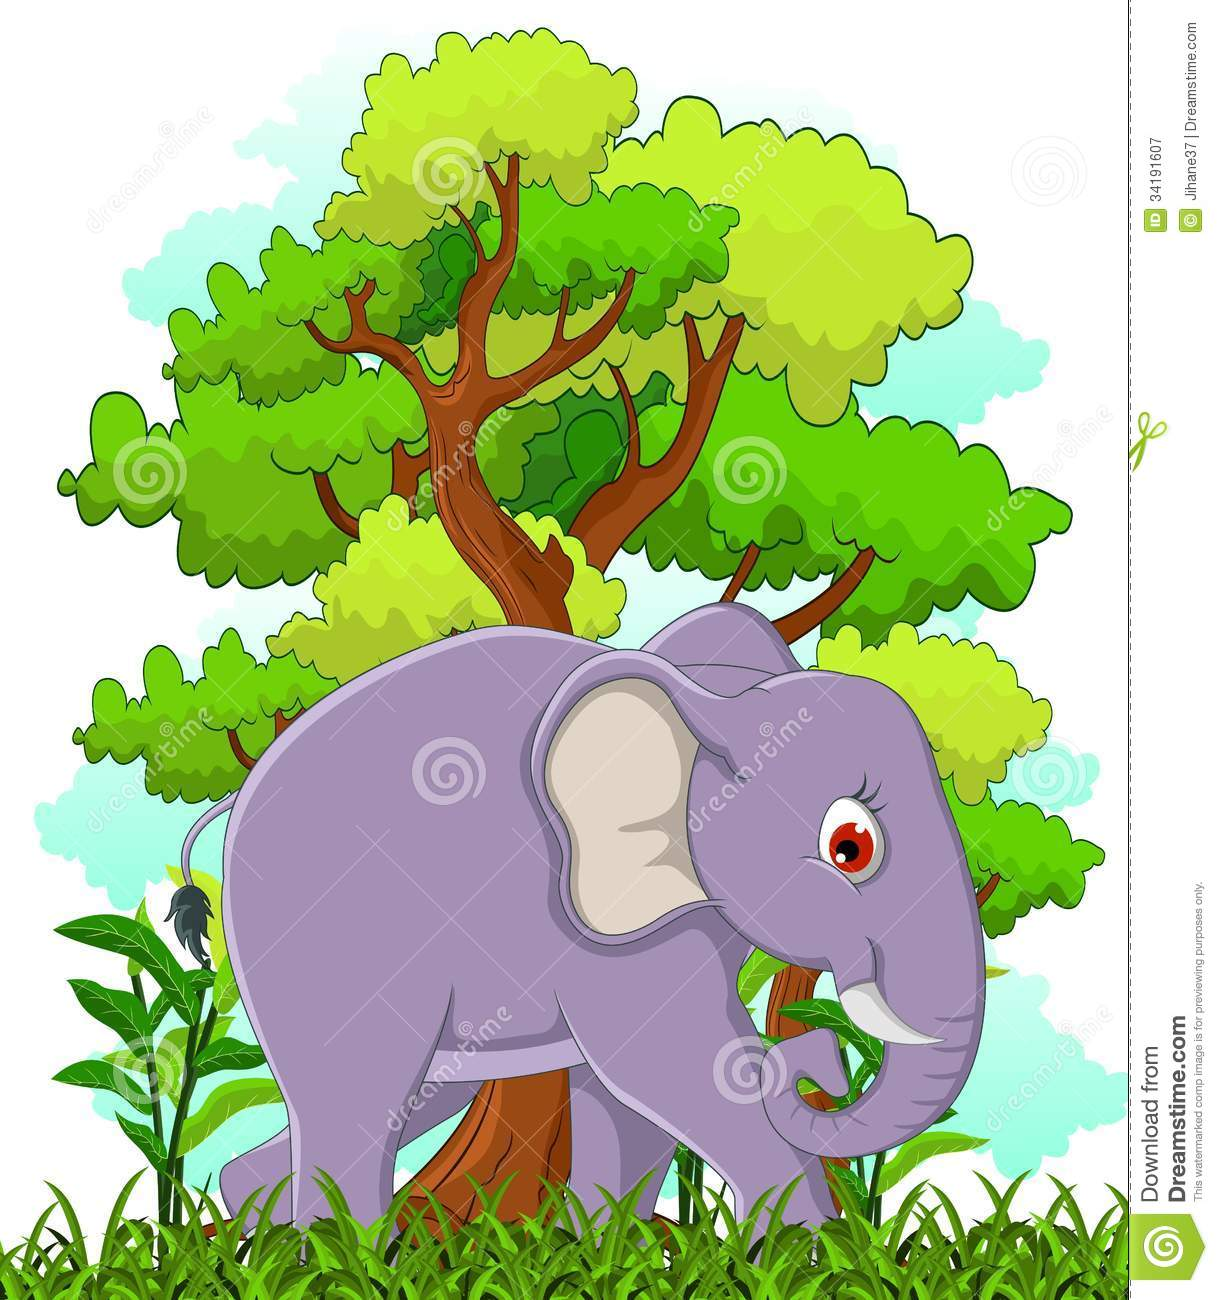 Elephant Cartoon With Forest Background Royalty Free Stock ... Coconut Tree Rainforest